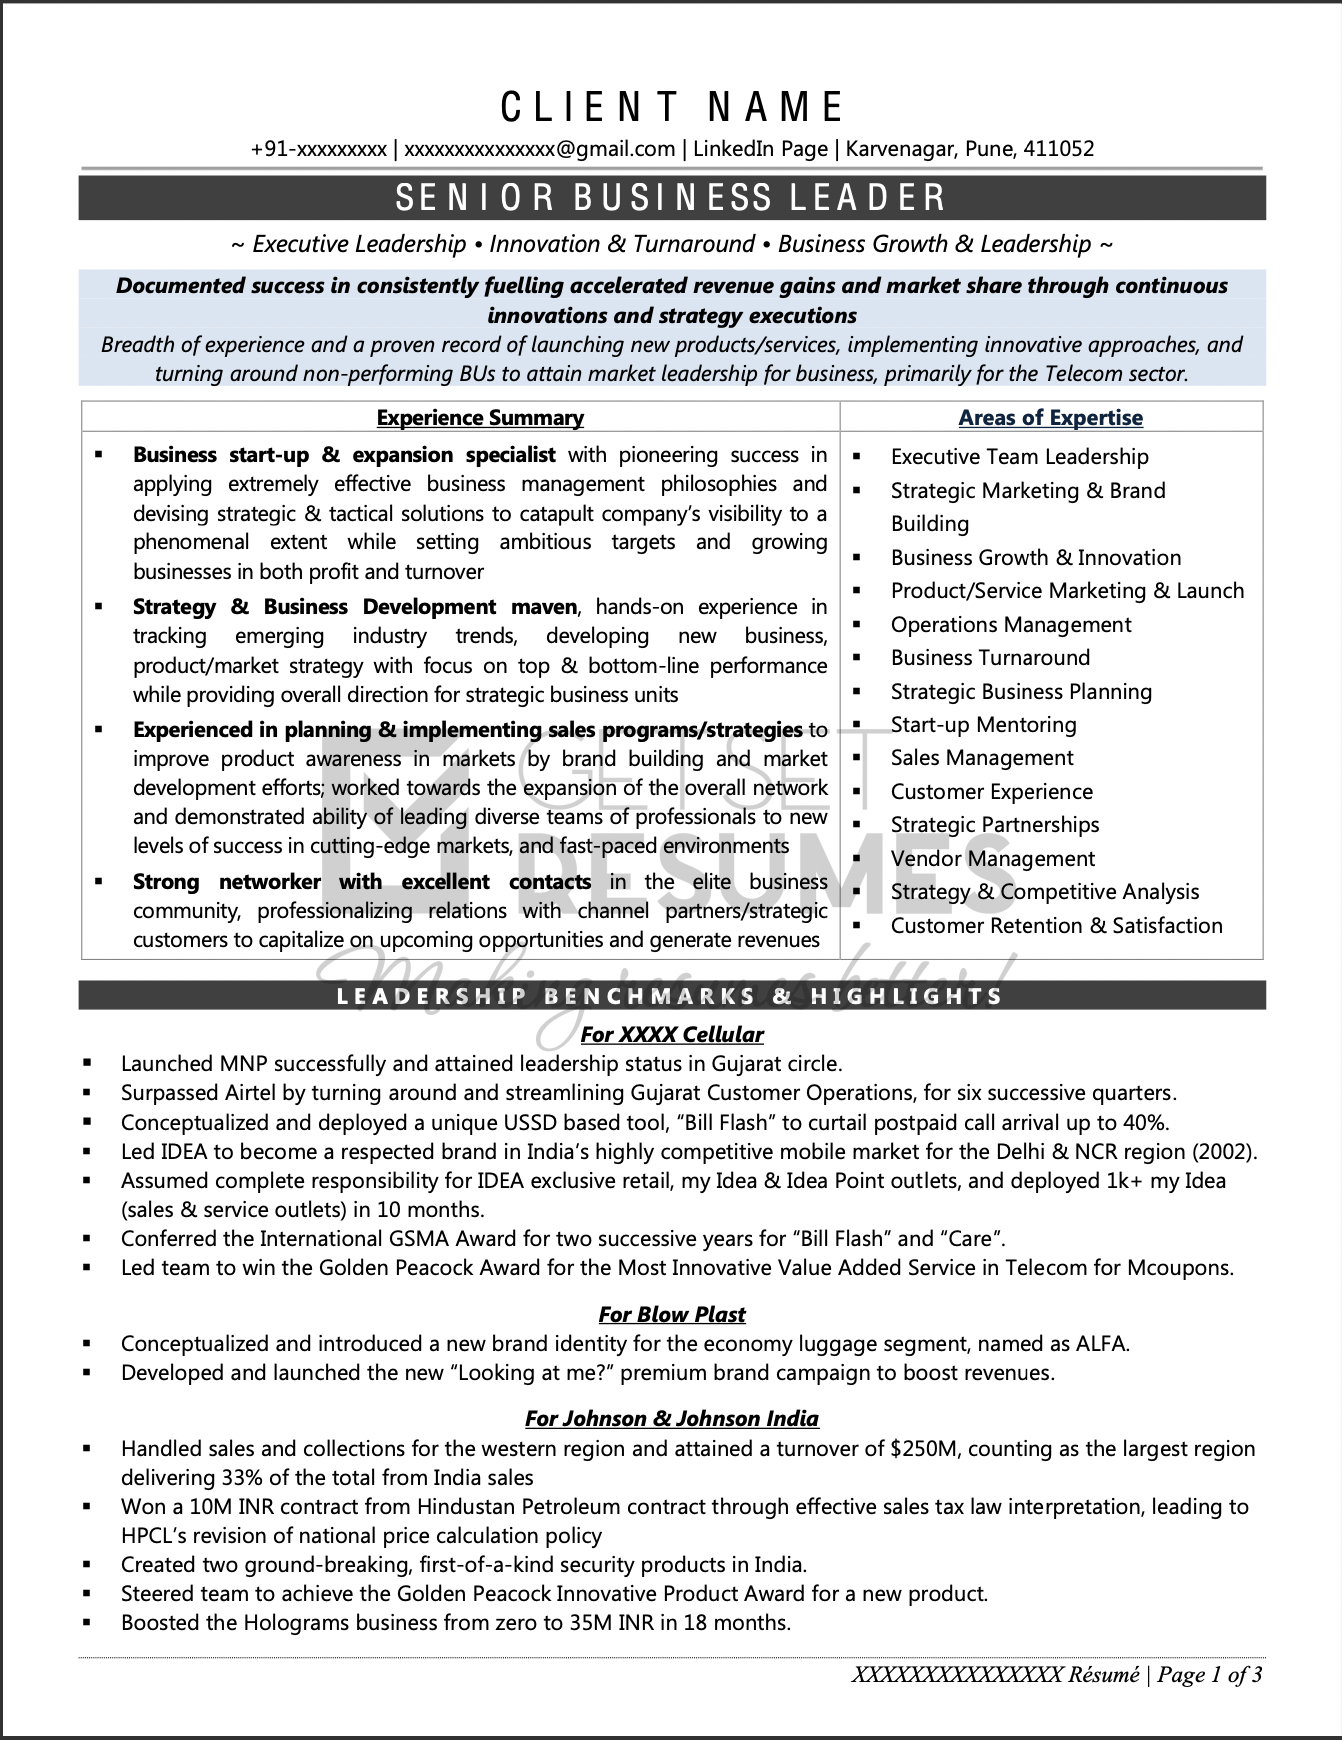 Sample Resume of Vice President - Customer Service & Operations in Telecom